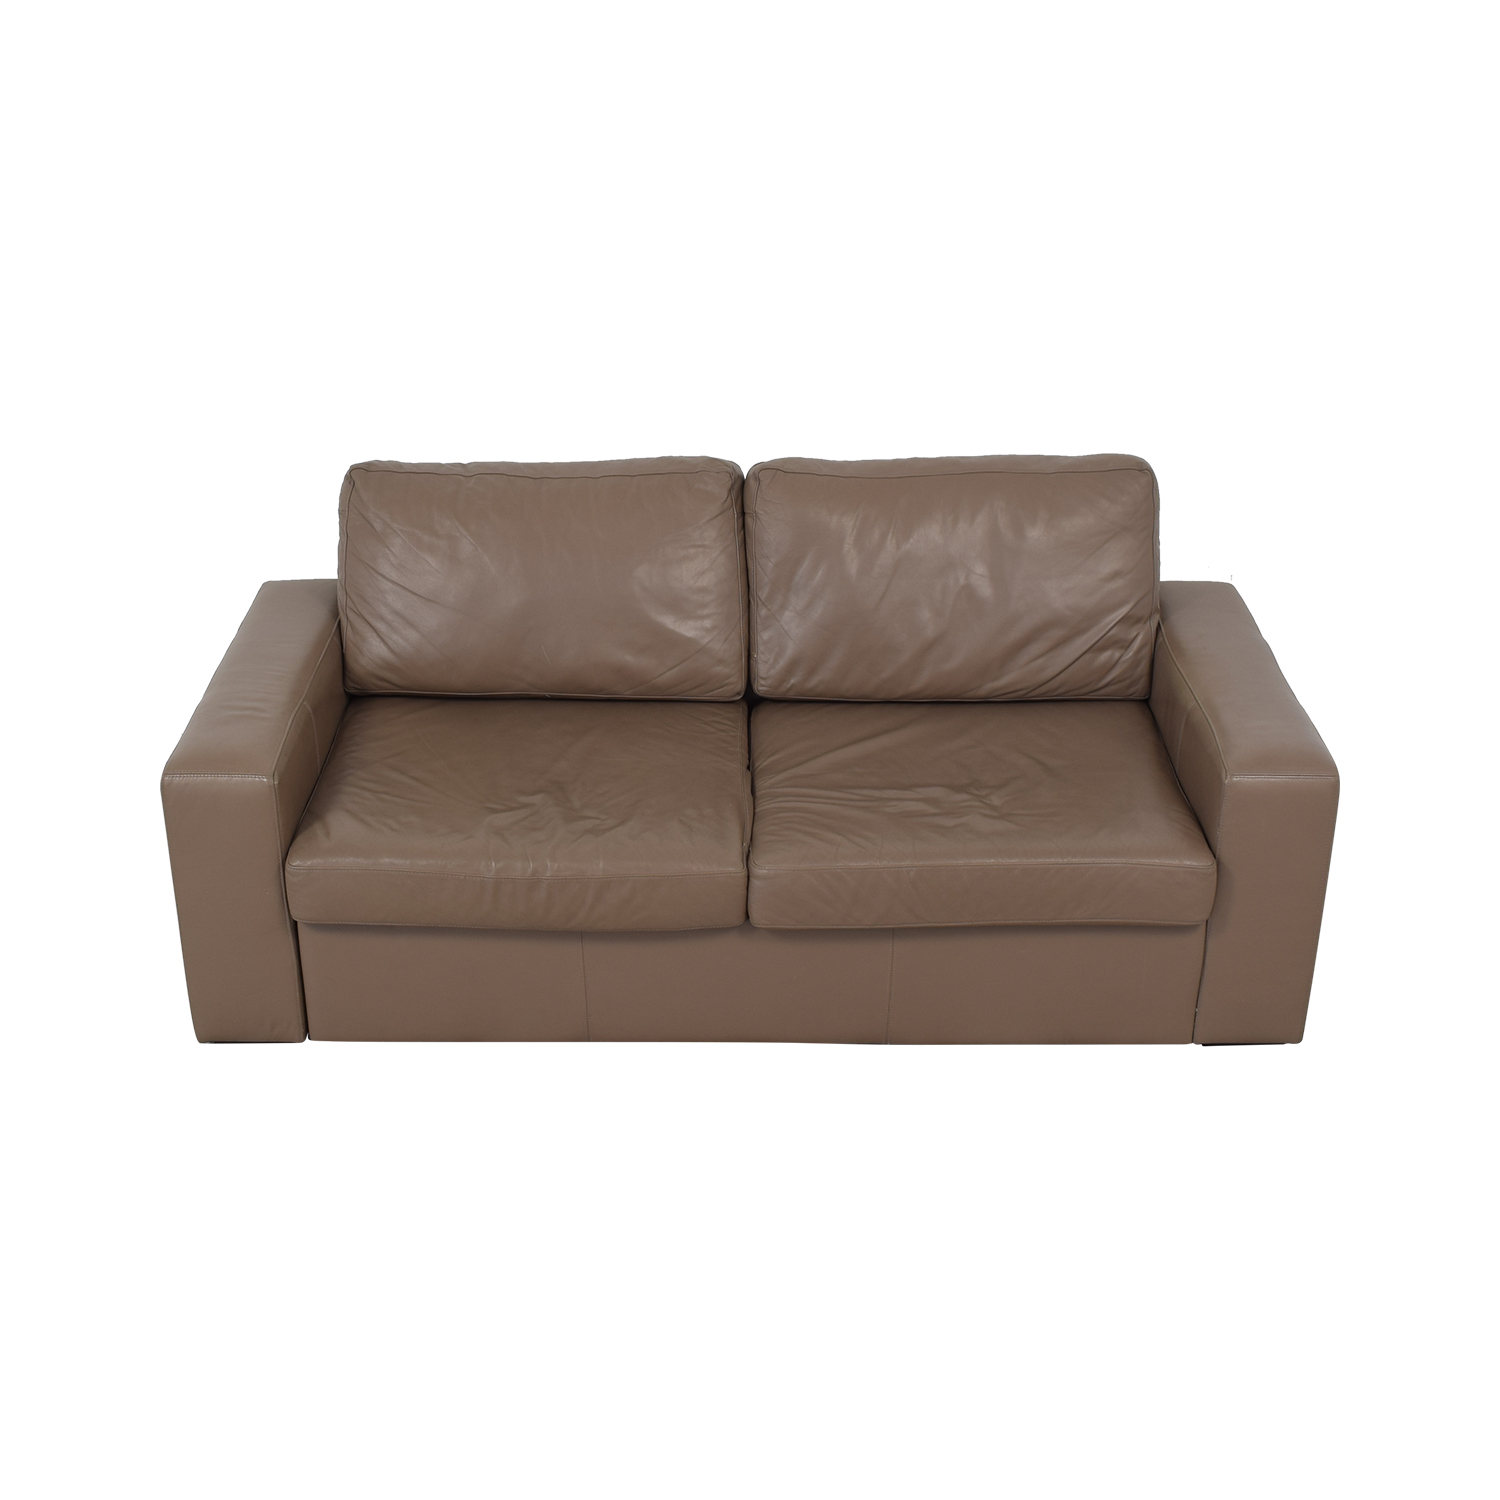 Phenomenal Leather Loveseat Sleeper Sofa Andrewgaddart Wooden Chair Designs For Living Room Andrewgaddartcom